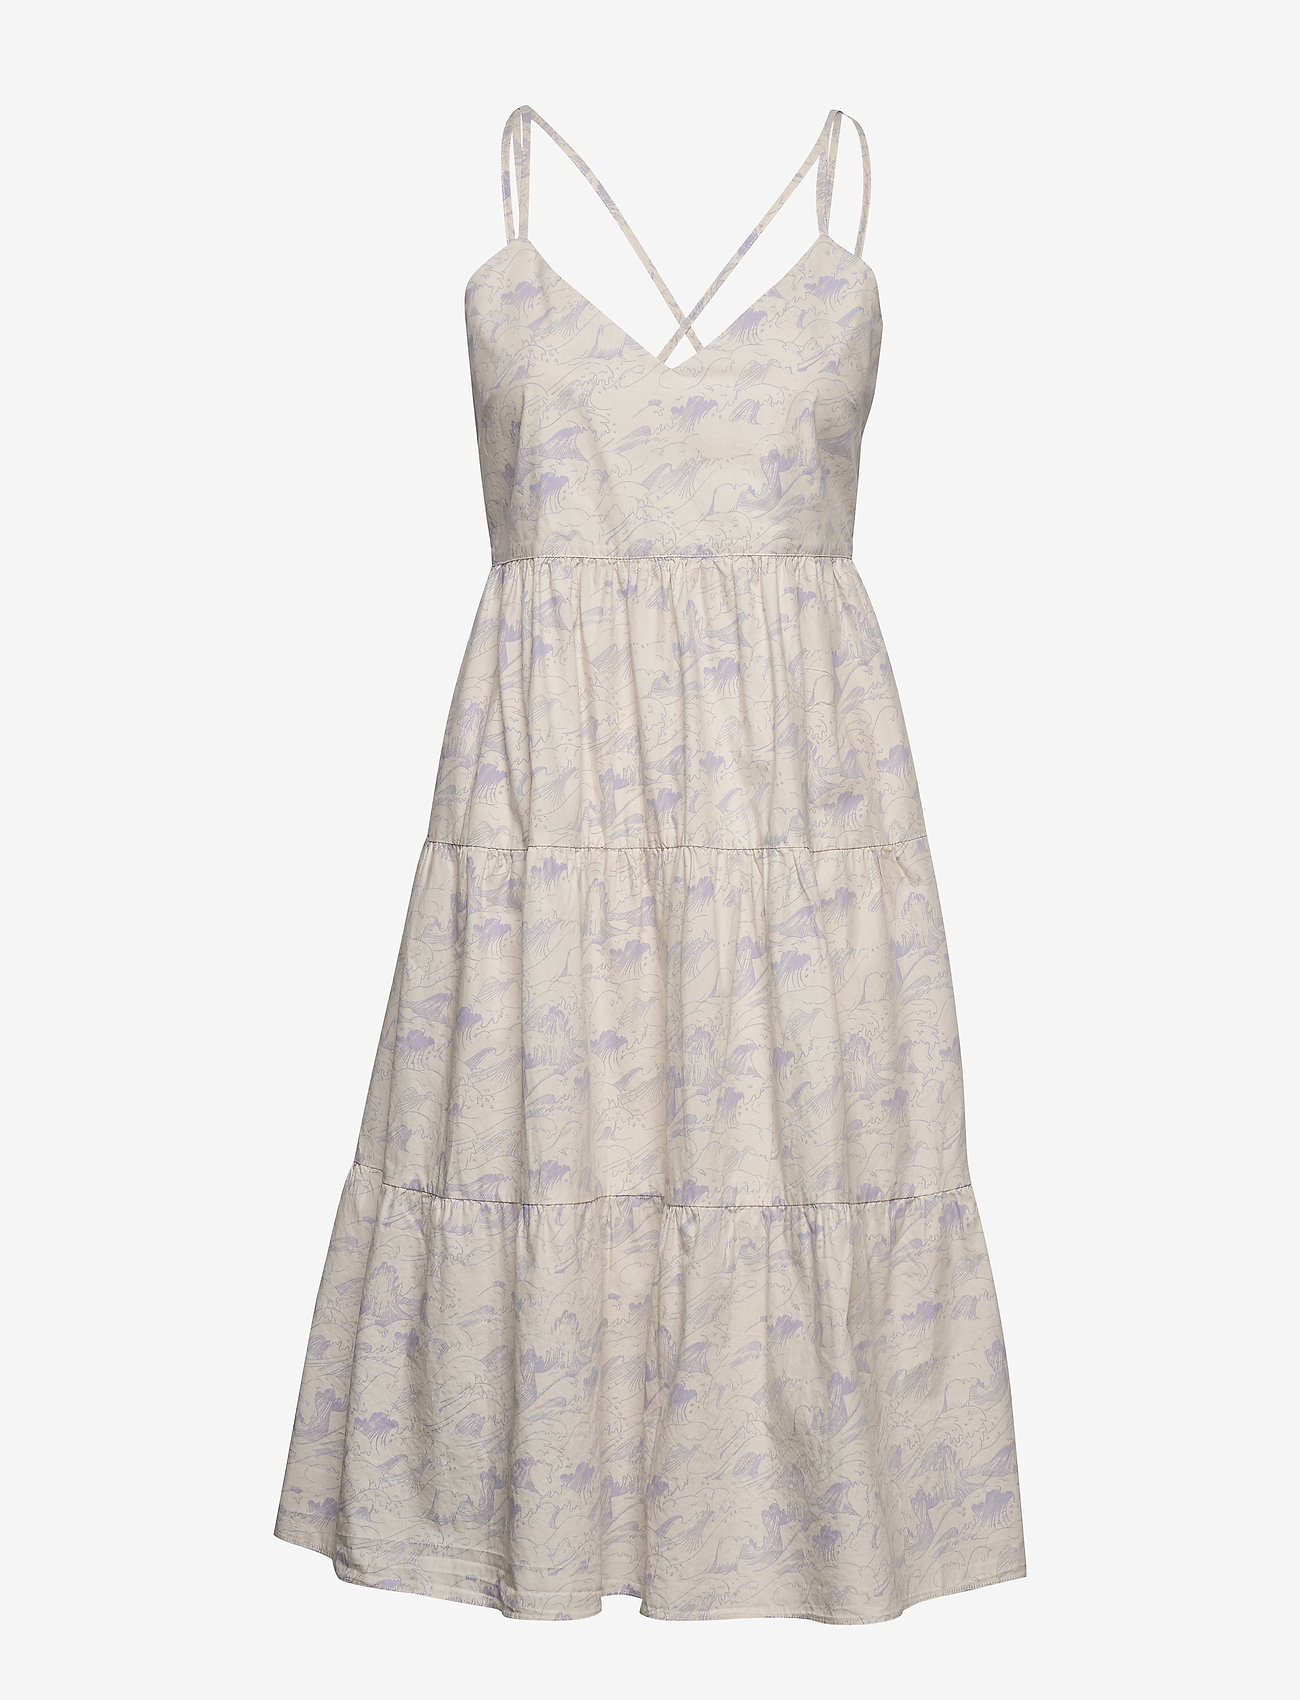 Enkaren Sl Dress Aop 6731 (Wave Aop) (585 kr) - Envii